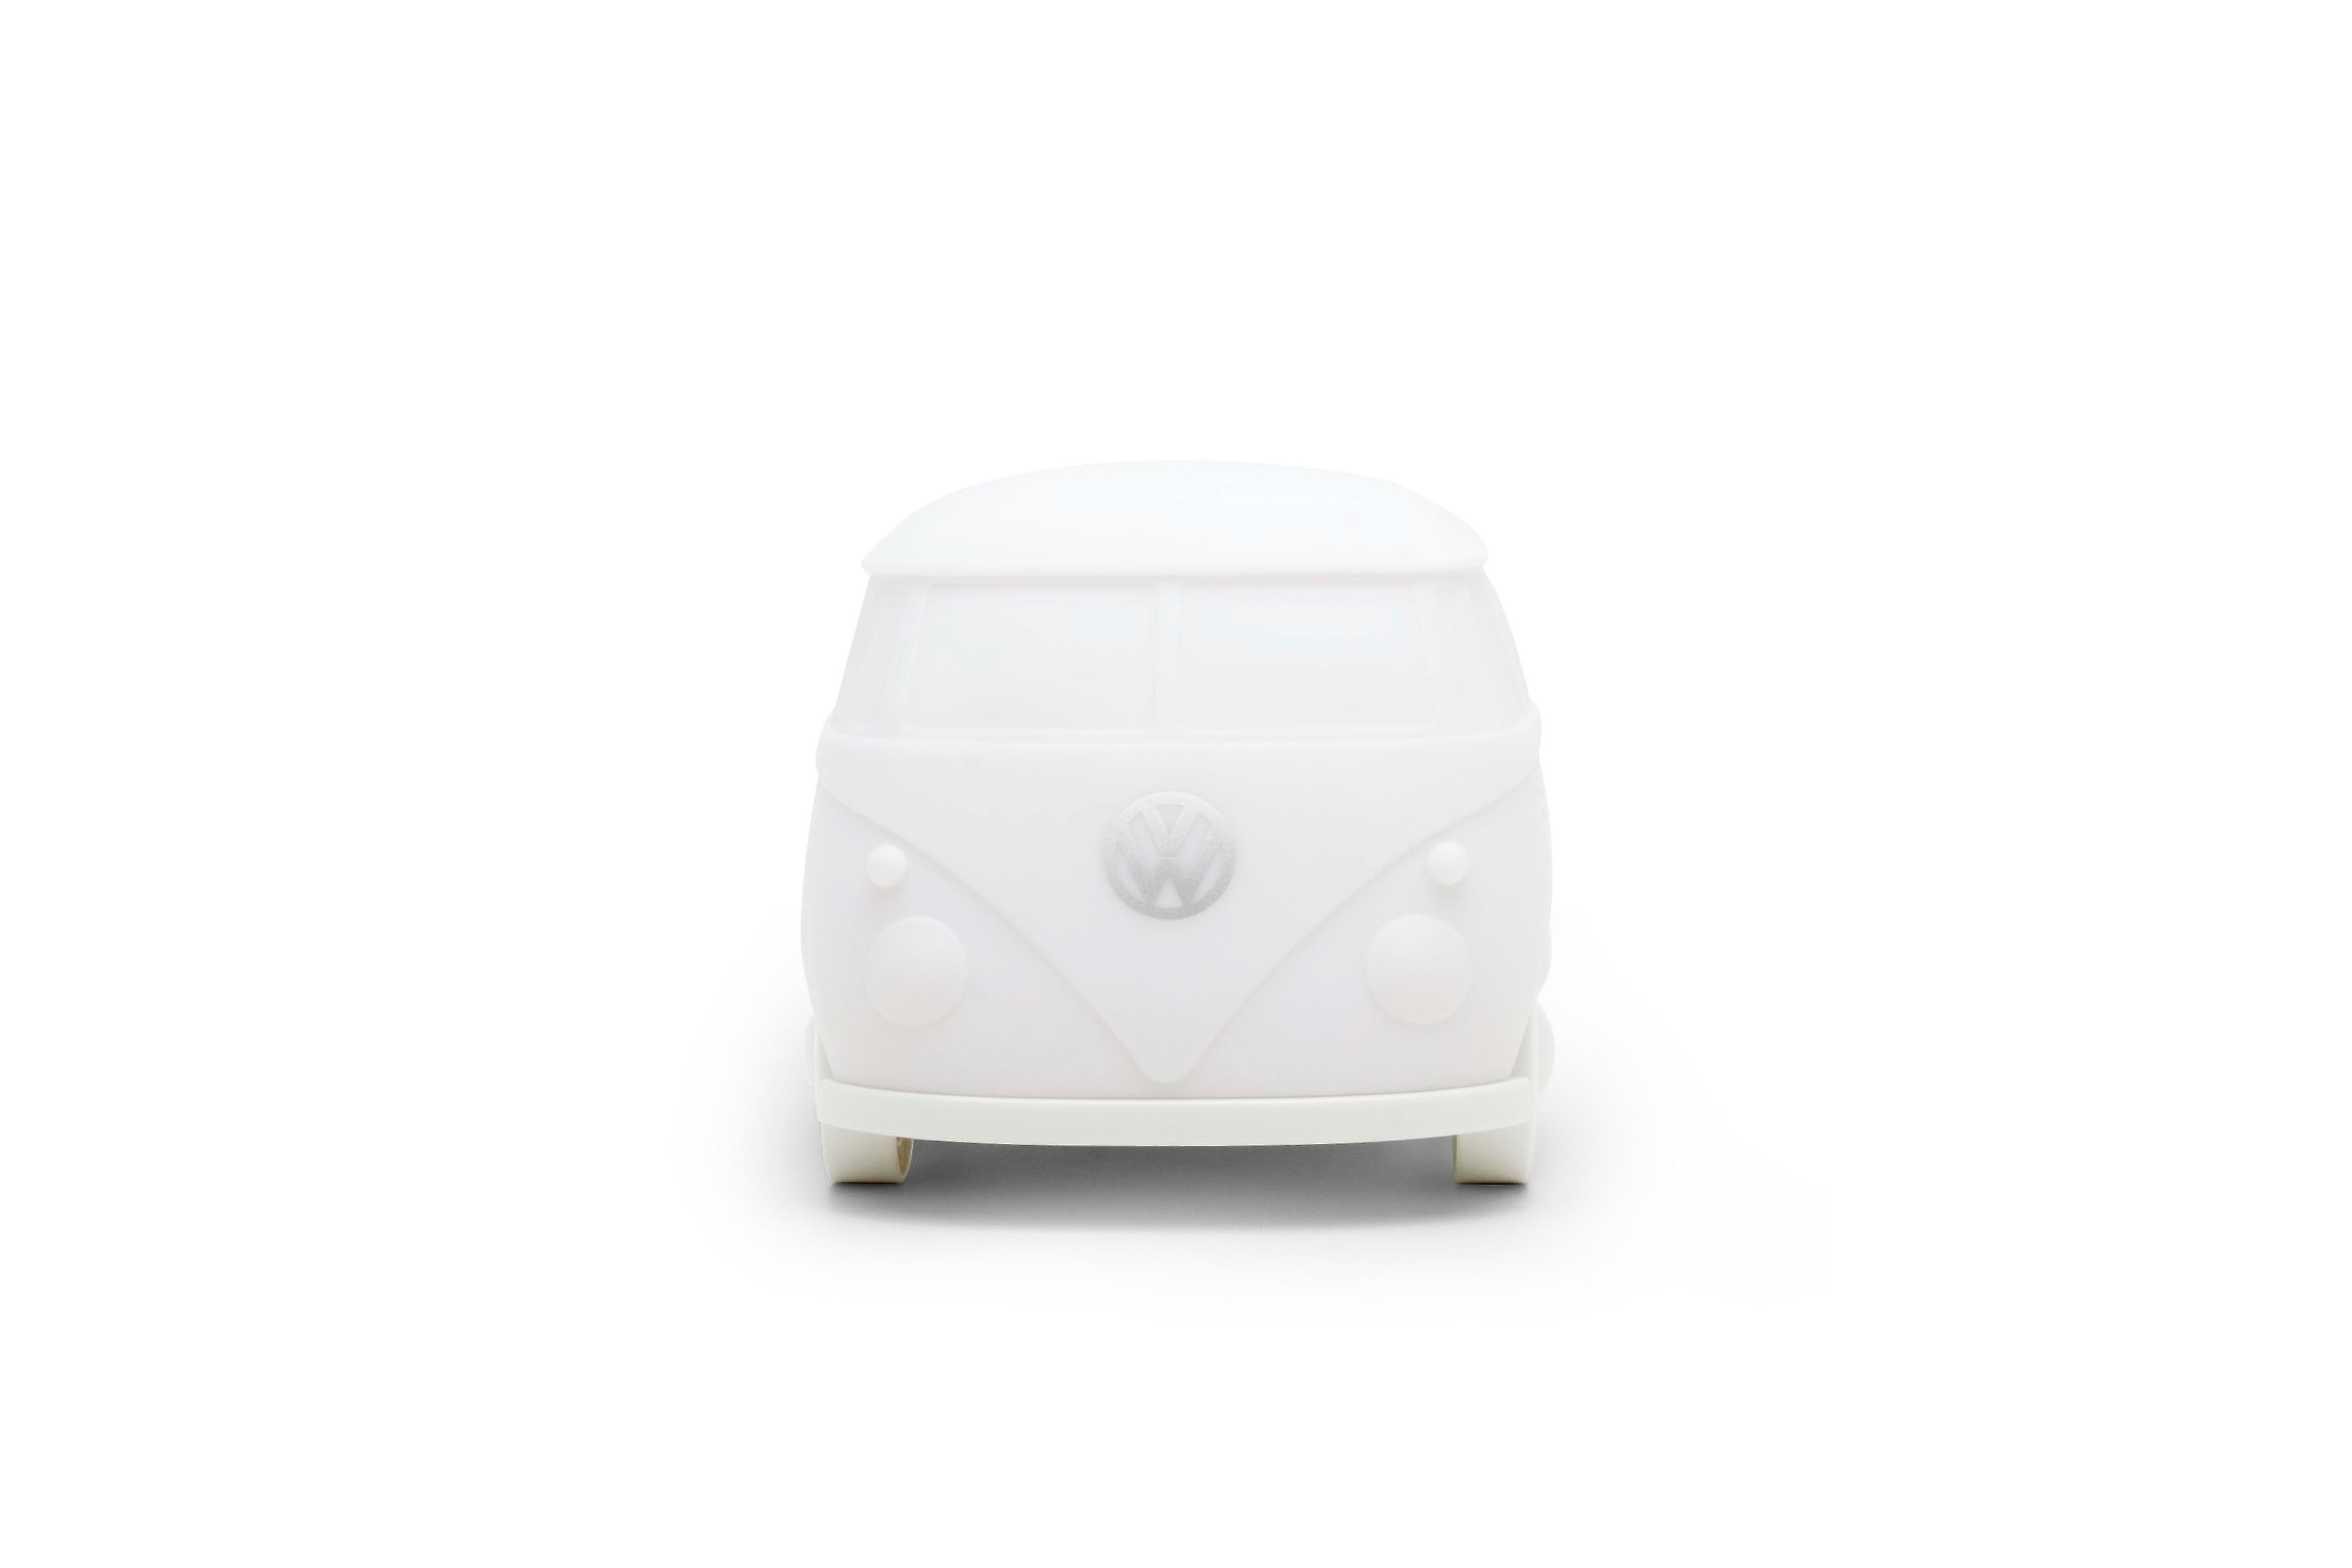 Official VW Camper Van Table Moodlight / Kids Night Light - Multi-Colour